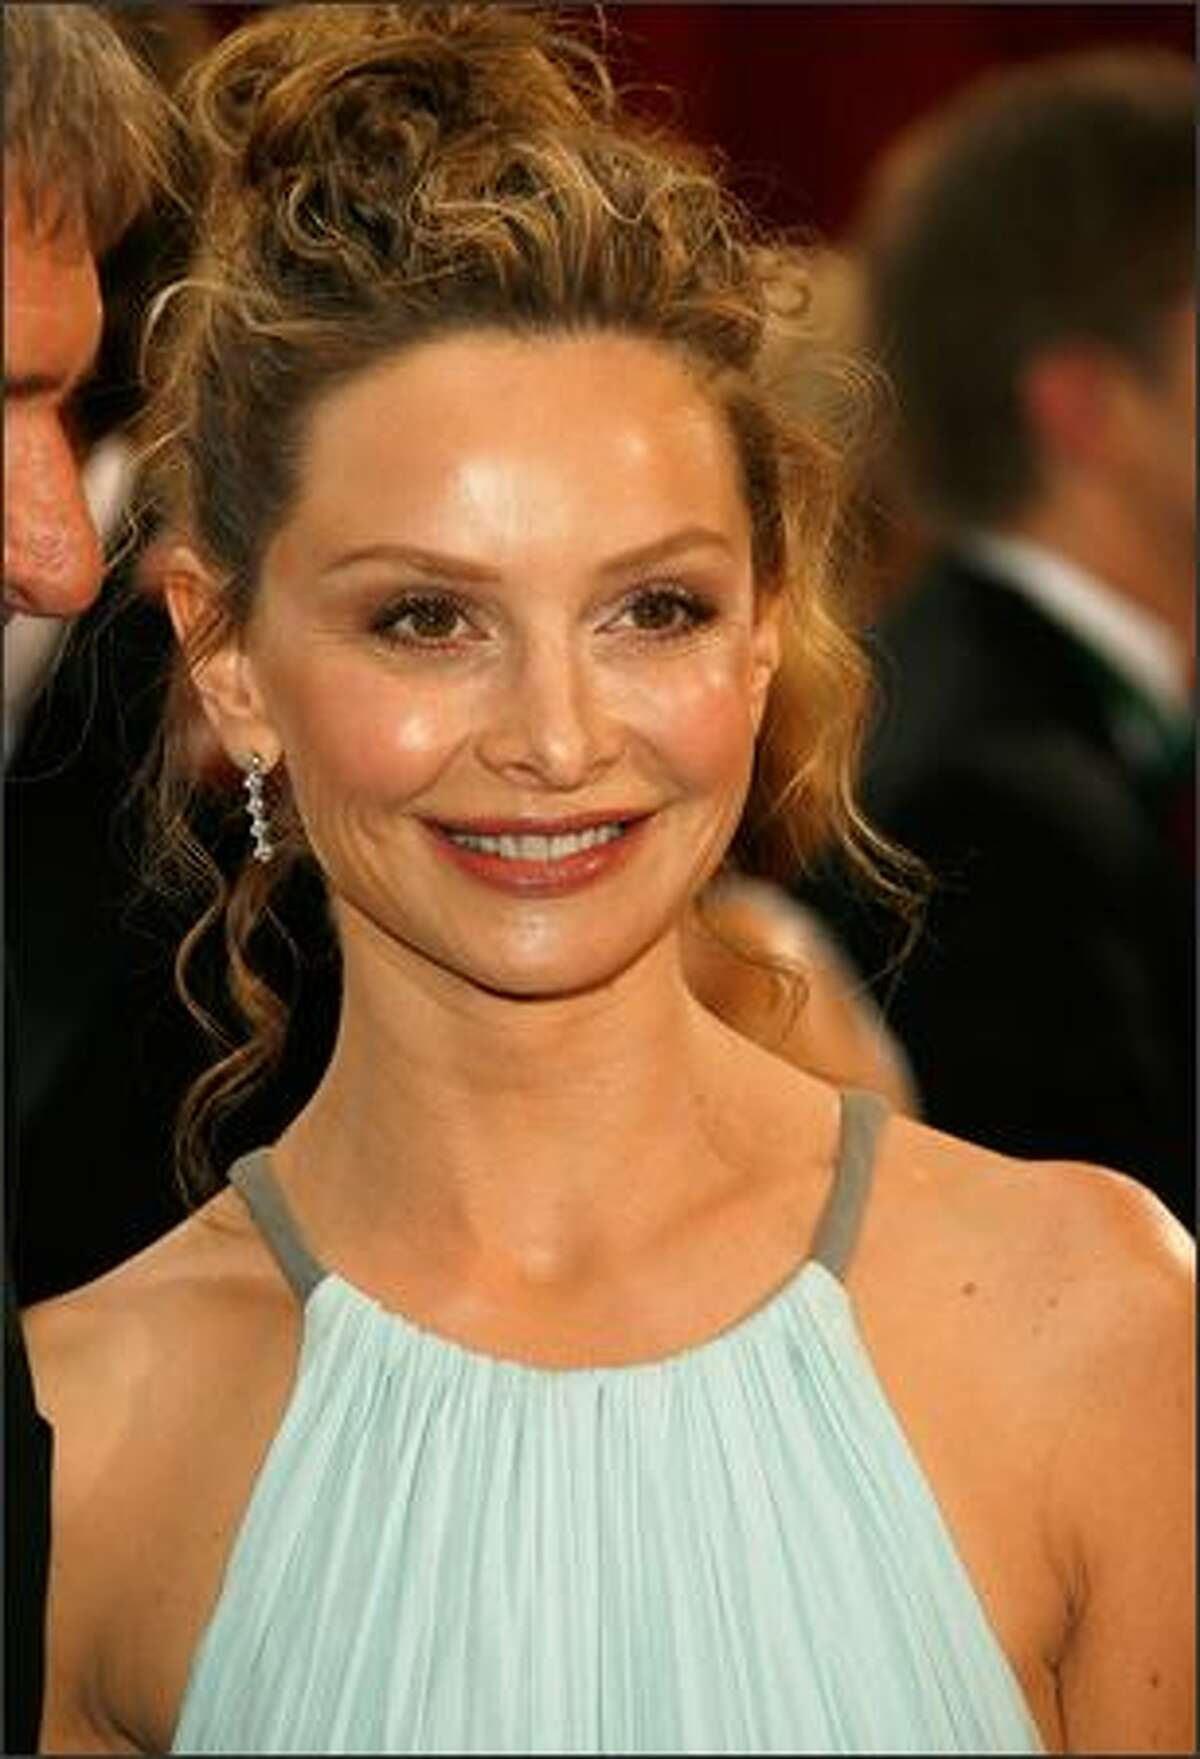 Actress Calista Flockhart arrives at the 80th Annual Academy Awards held at the Kodak Theatre in Hollywood, California.